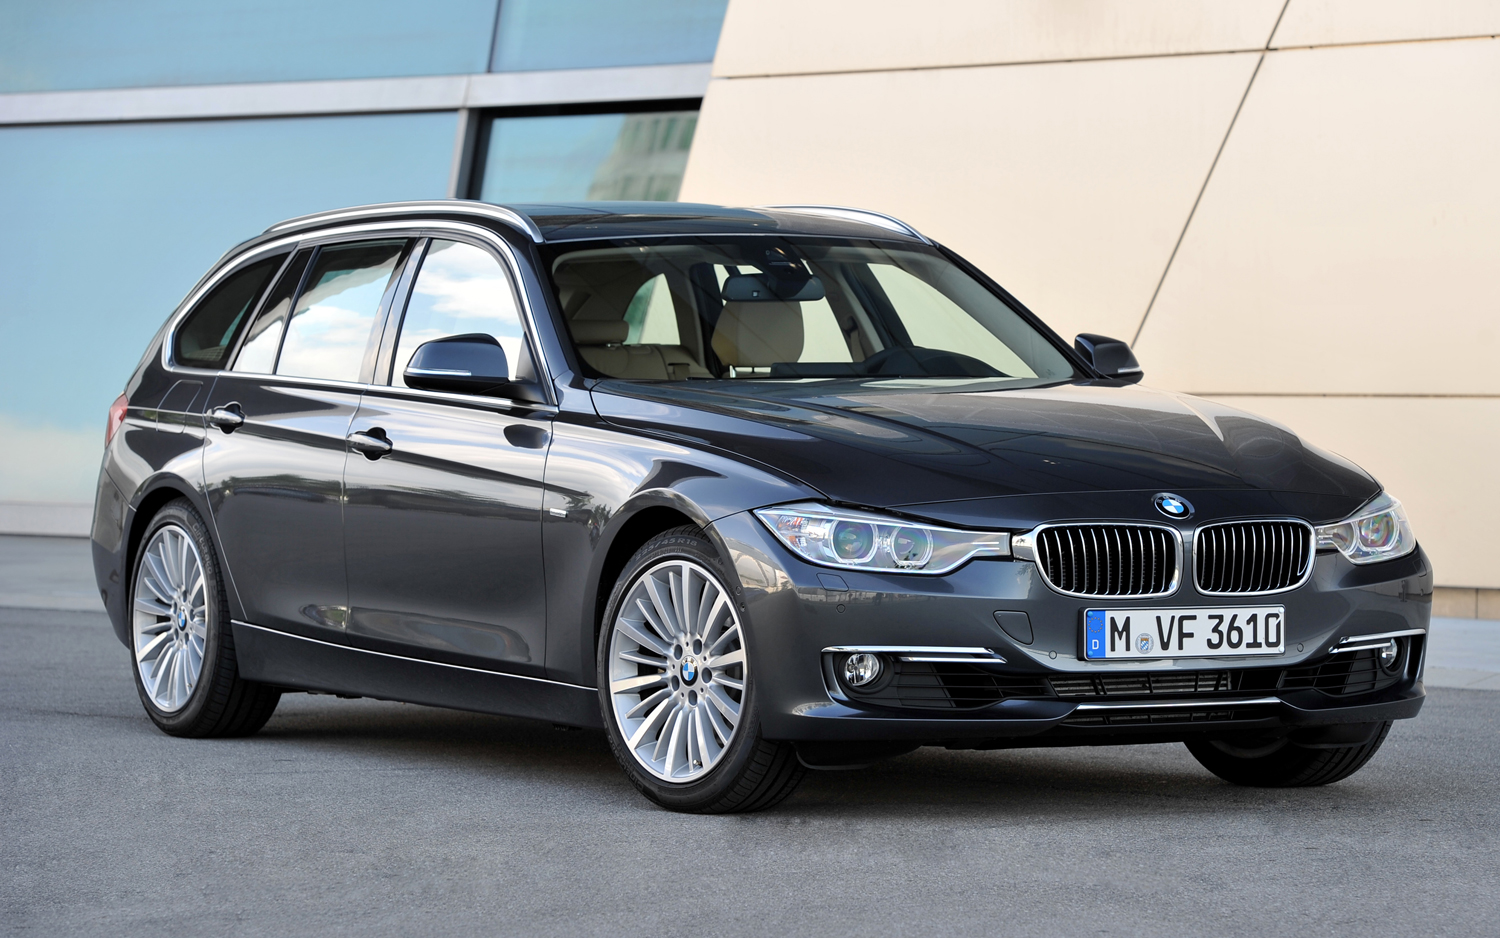 BMW Review Amazing Pictures And Images Look At The Car - Bmw 2013 328